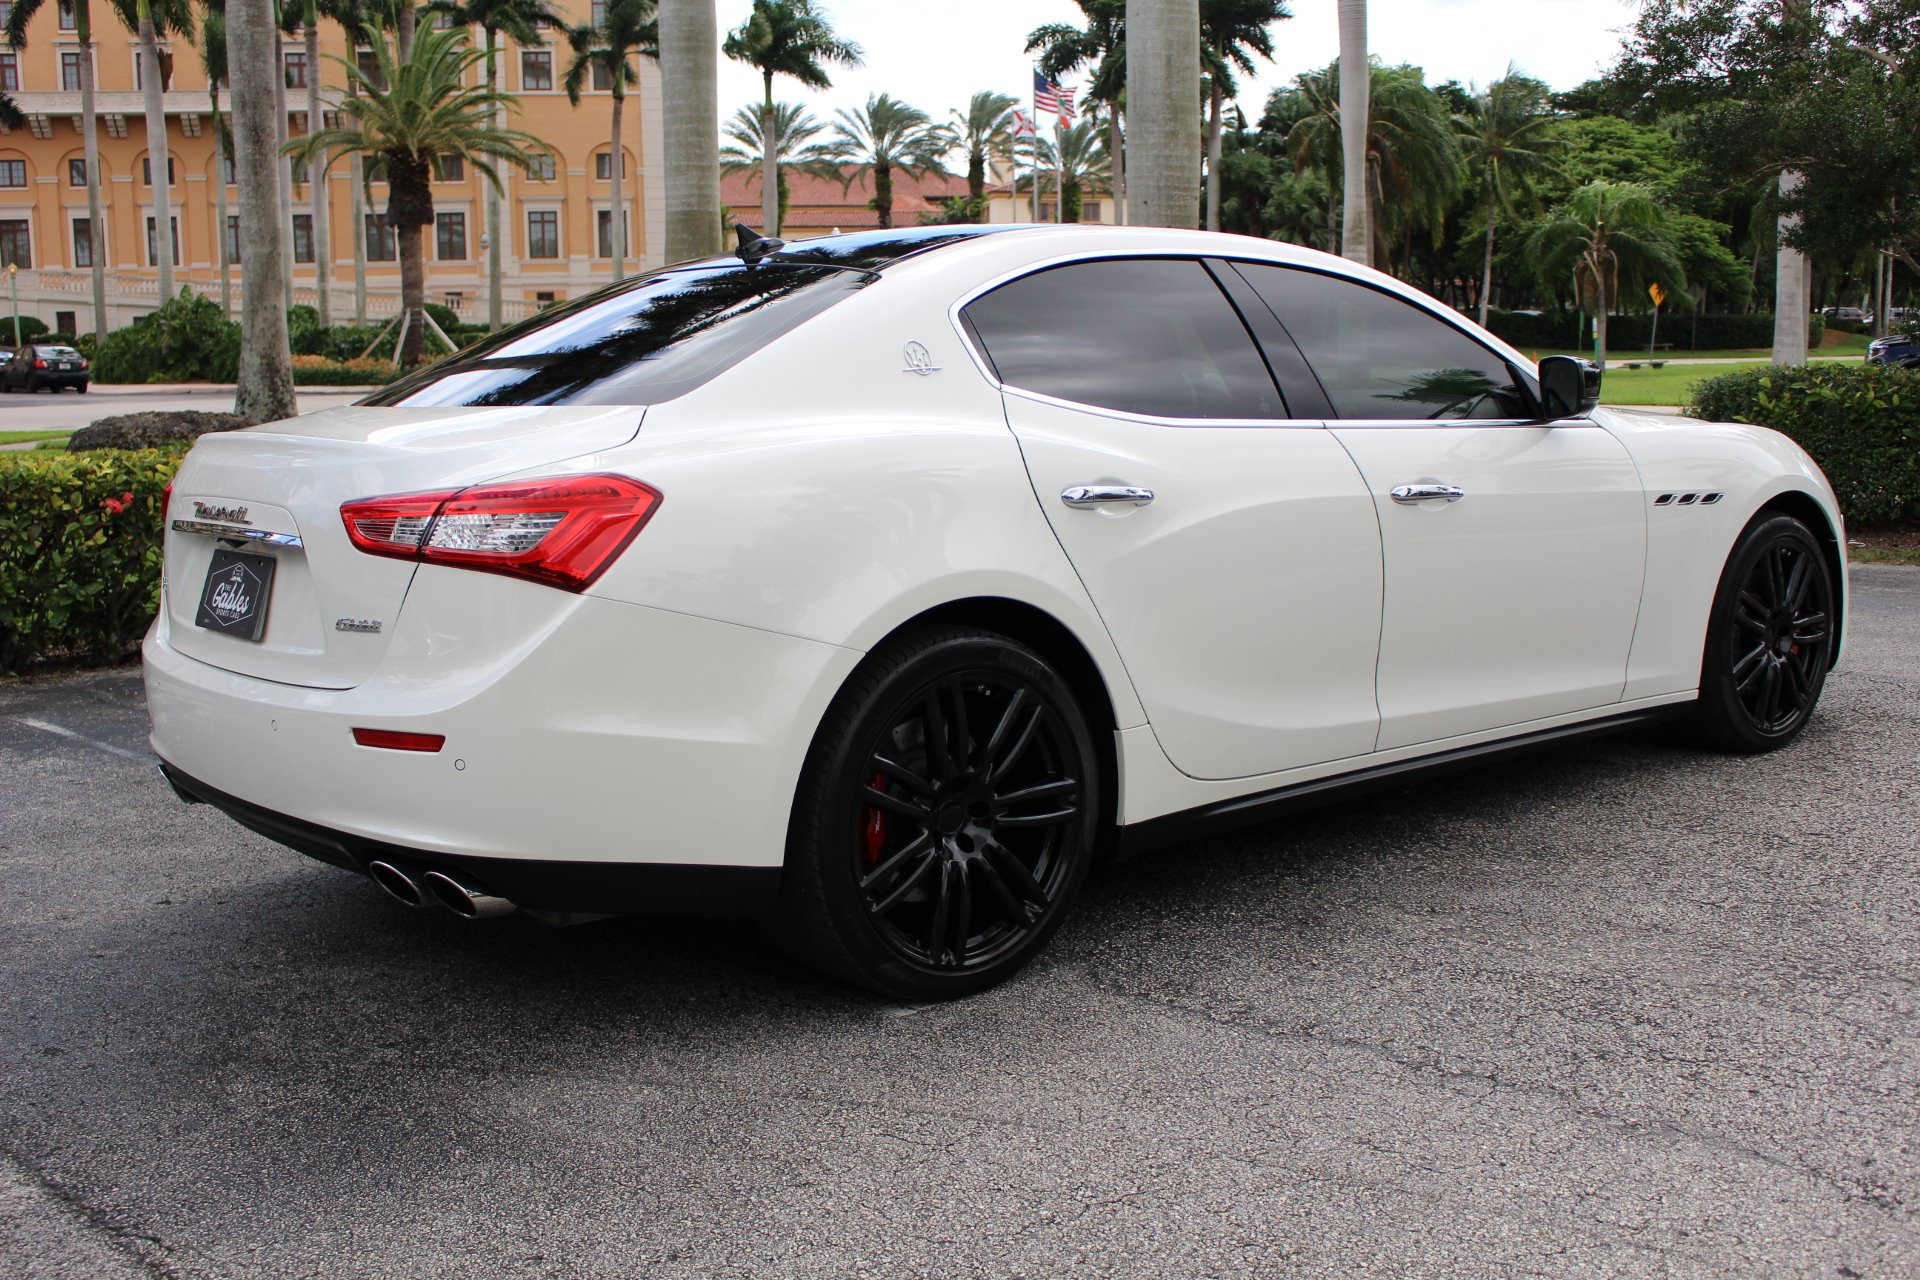 Used 2016 Maserati Ghibli S for sale Sold at The Gables Sports Cars in Miami FL 33146 3